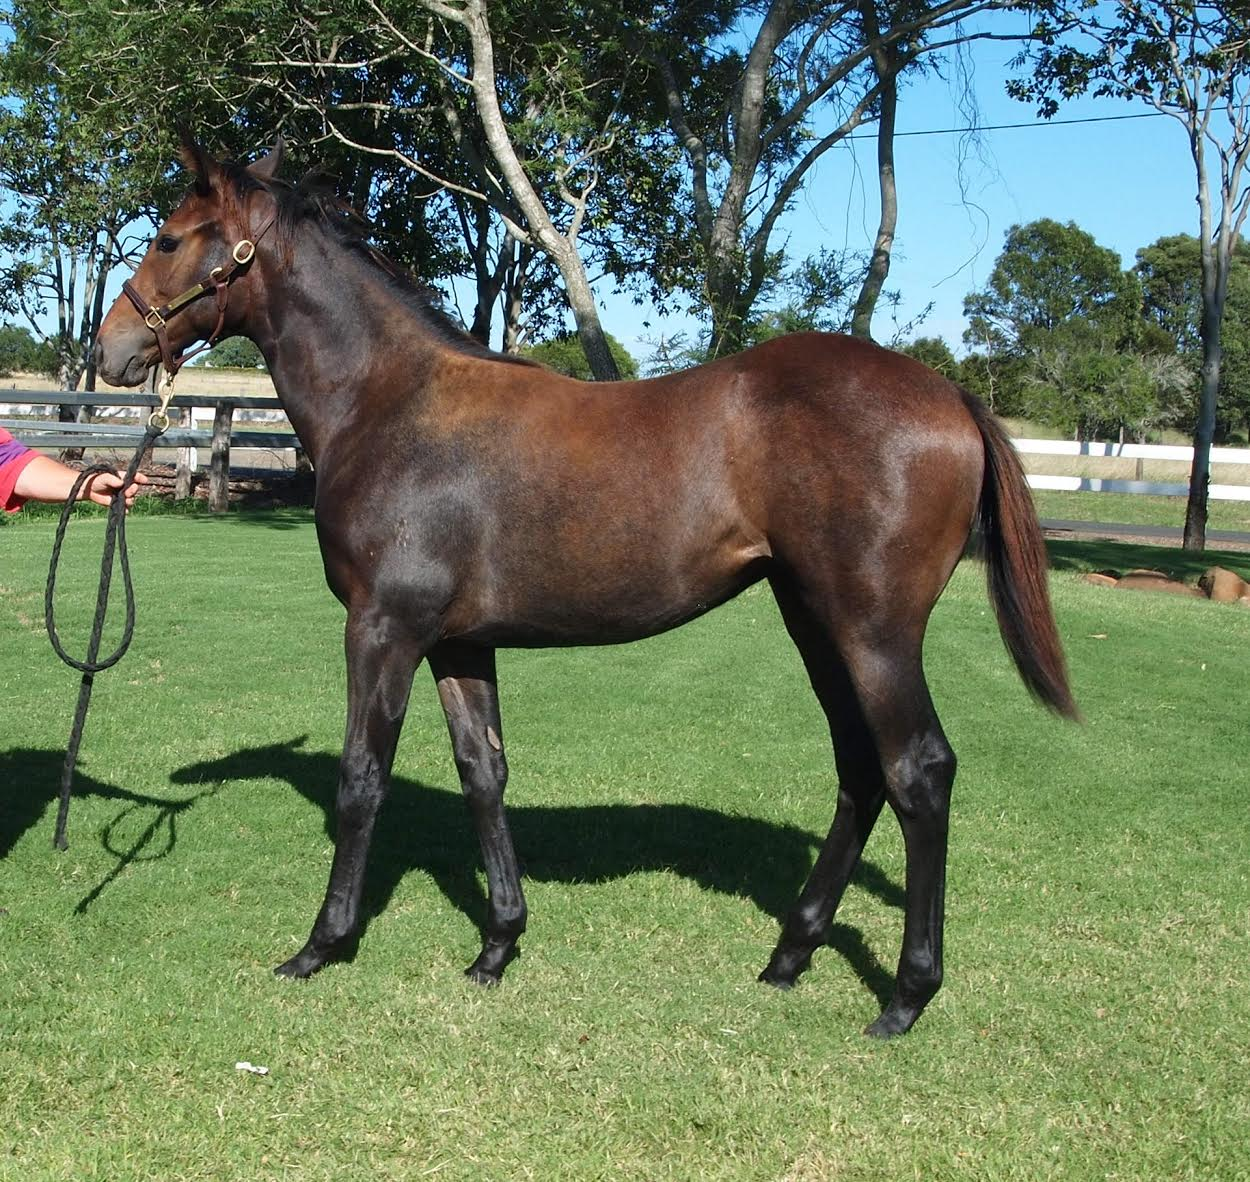 Top Echelon – SALE EVE weanling filly